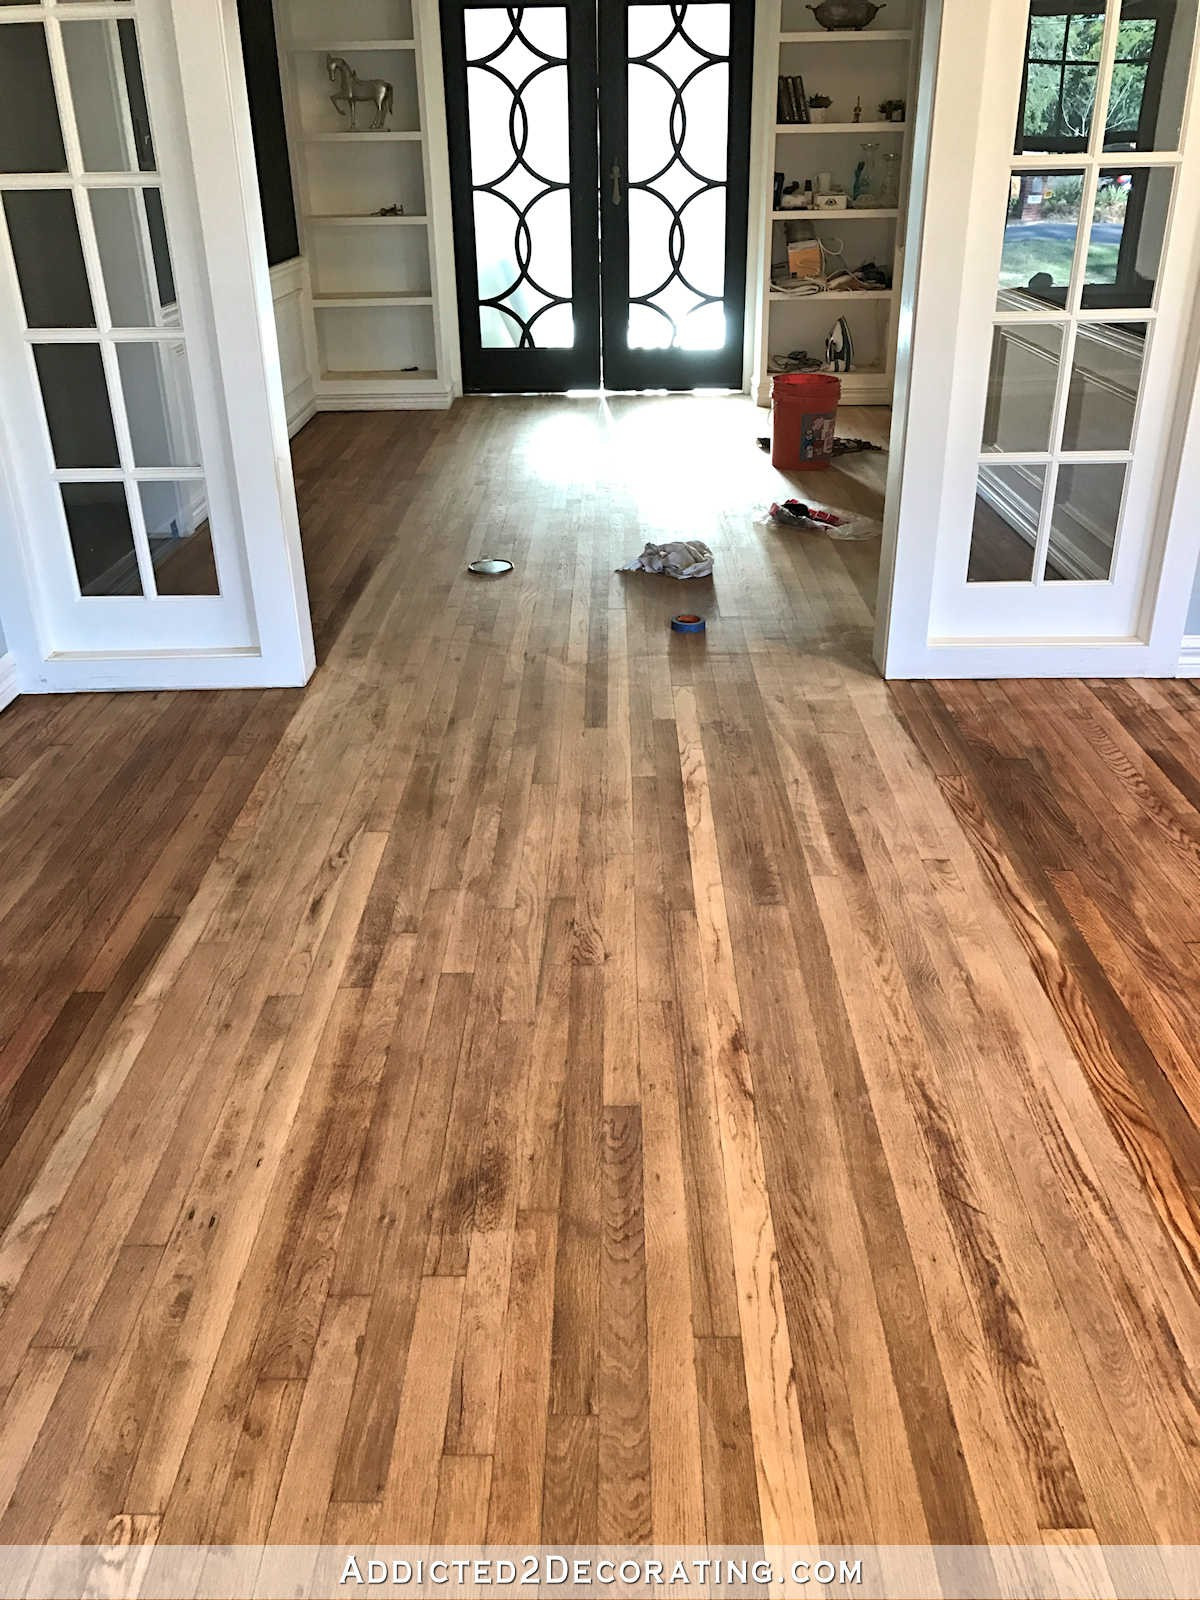 hardwood floor care after refinishing of 19 unique how much does it cost to refinish hardwood floors gallery in how much does it cost to refinish hardwood floors unique adventures in staining my red oak